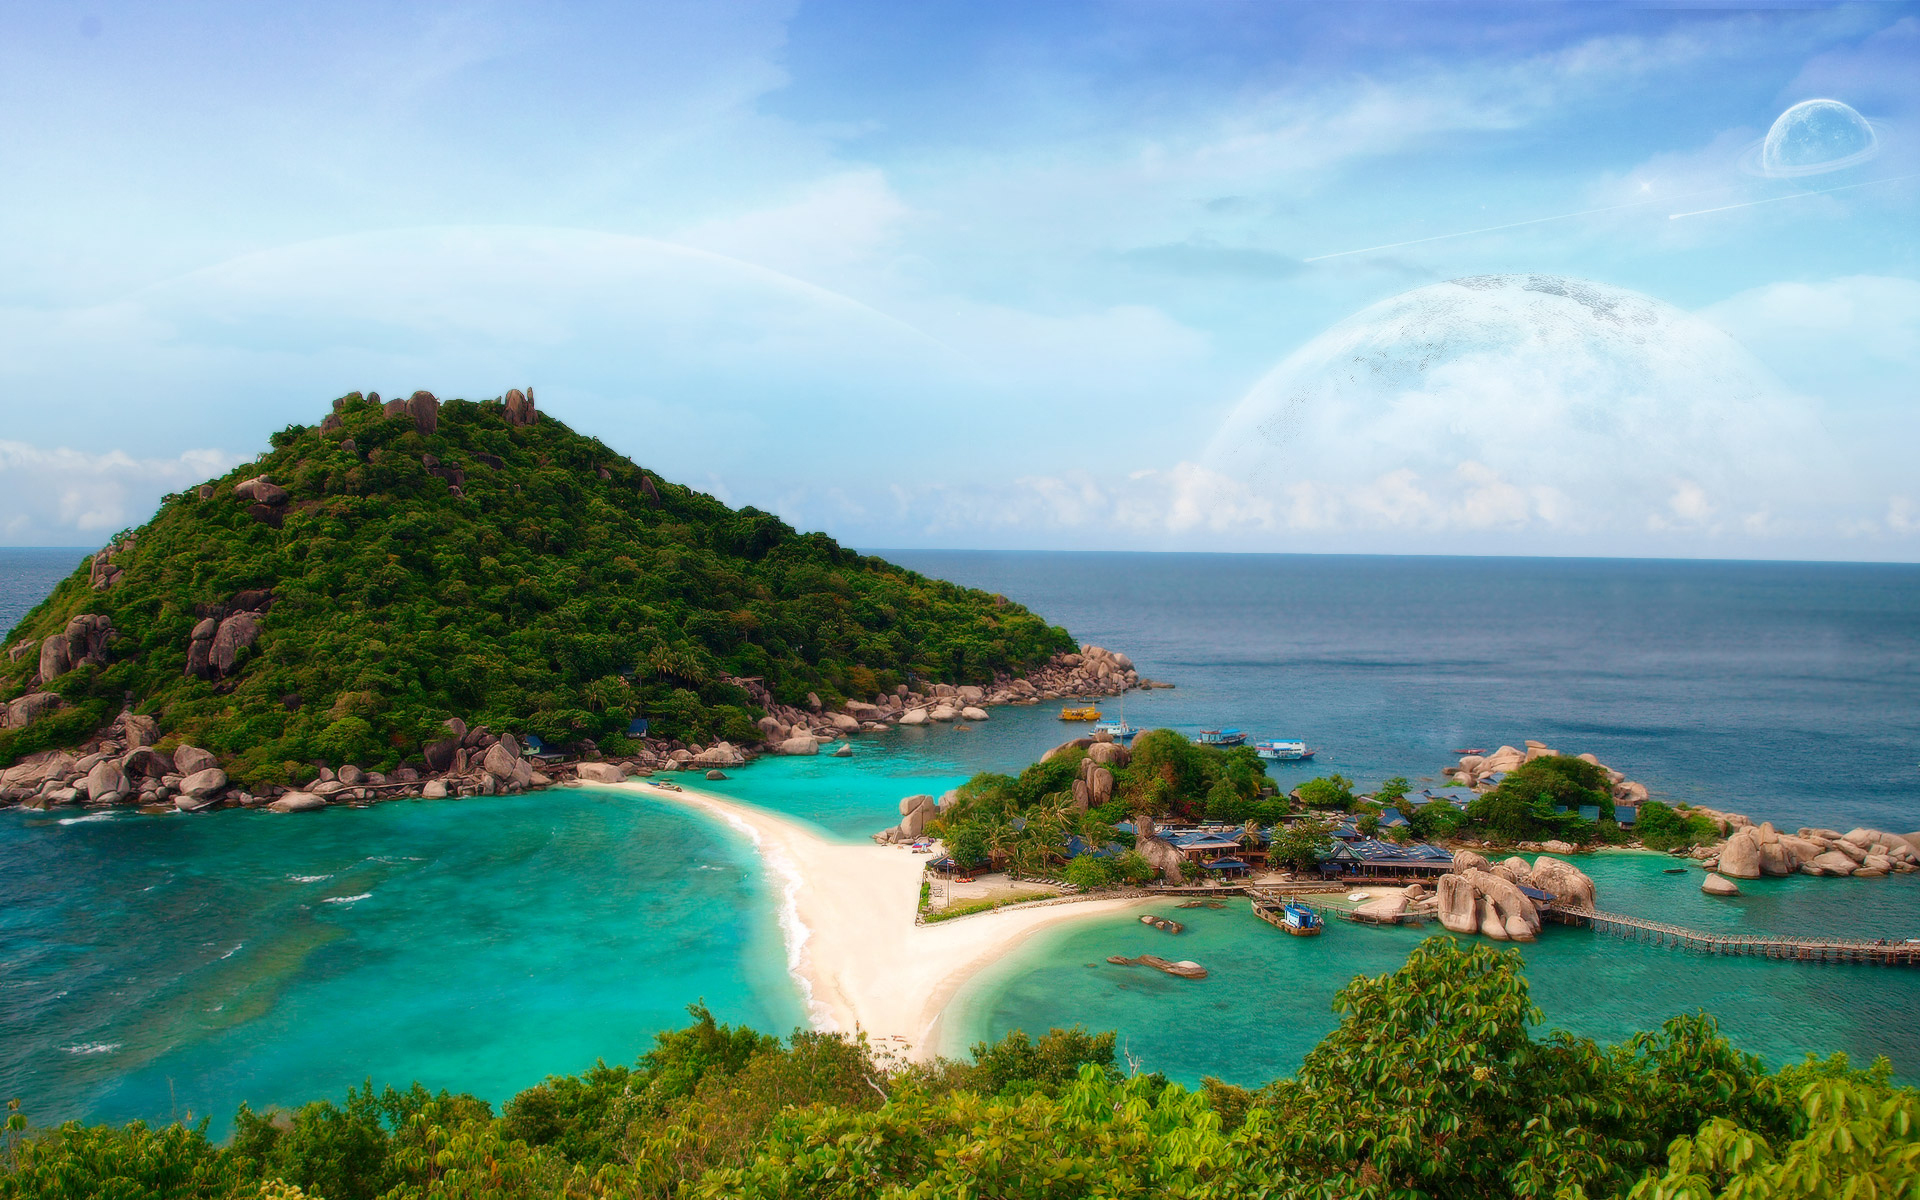 Ko Tao Island In Thailand Full HD Wallpaper And Background Image